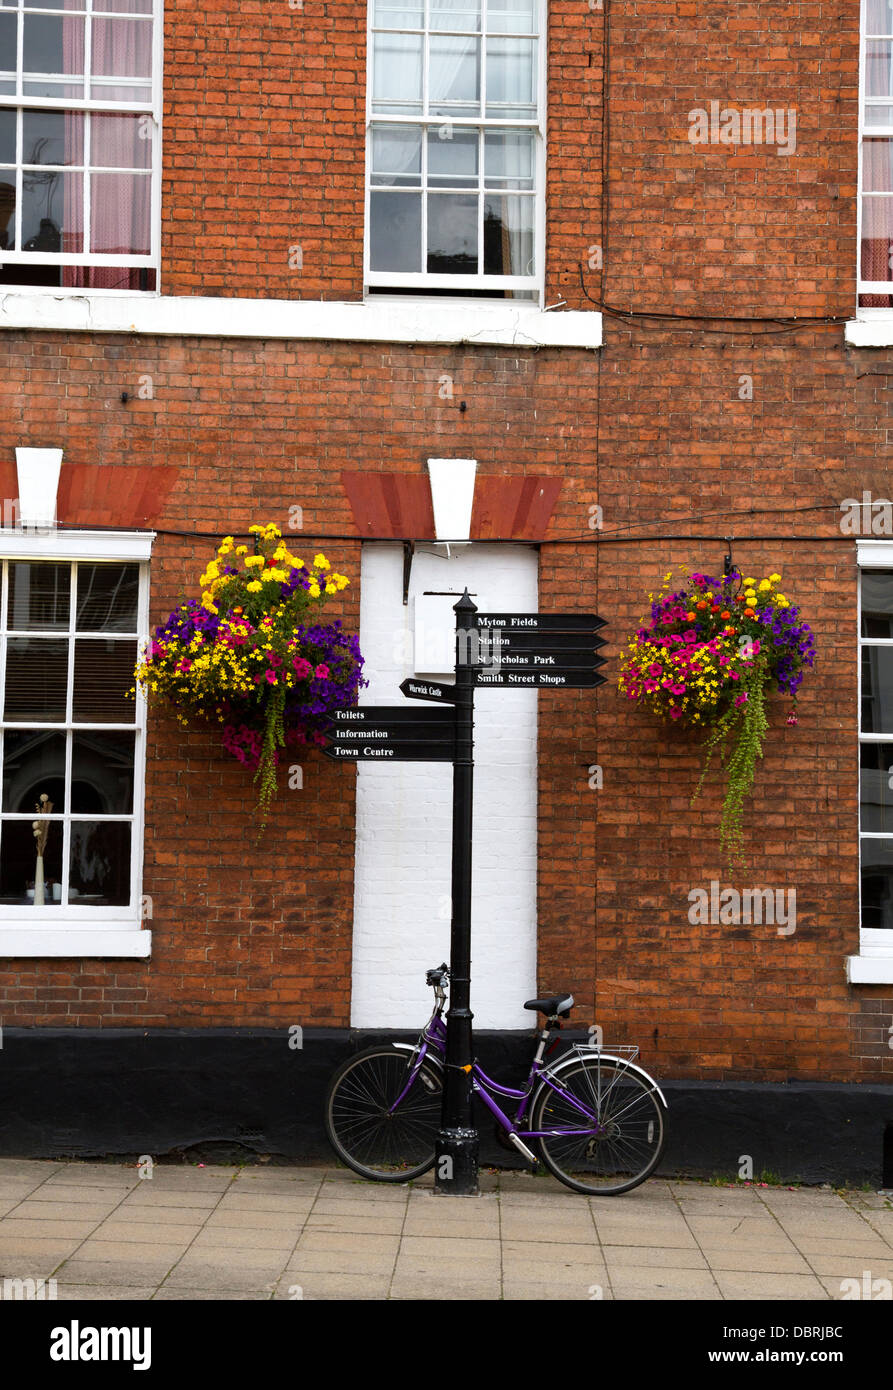 House in Warwick with parked bicycle and hanging baskets - Stock Image